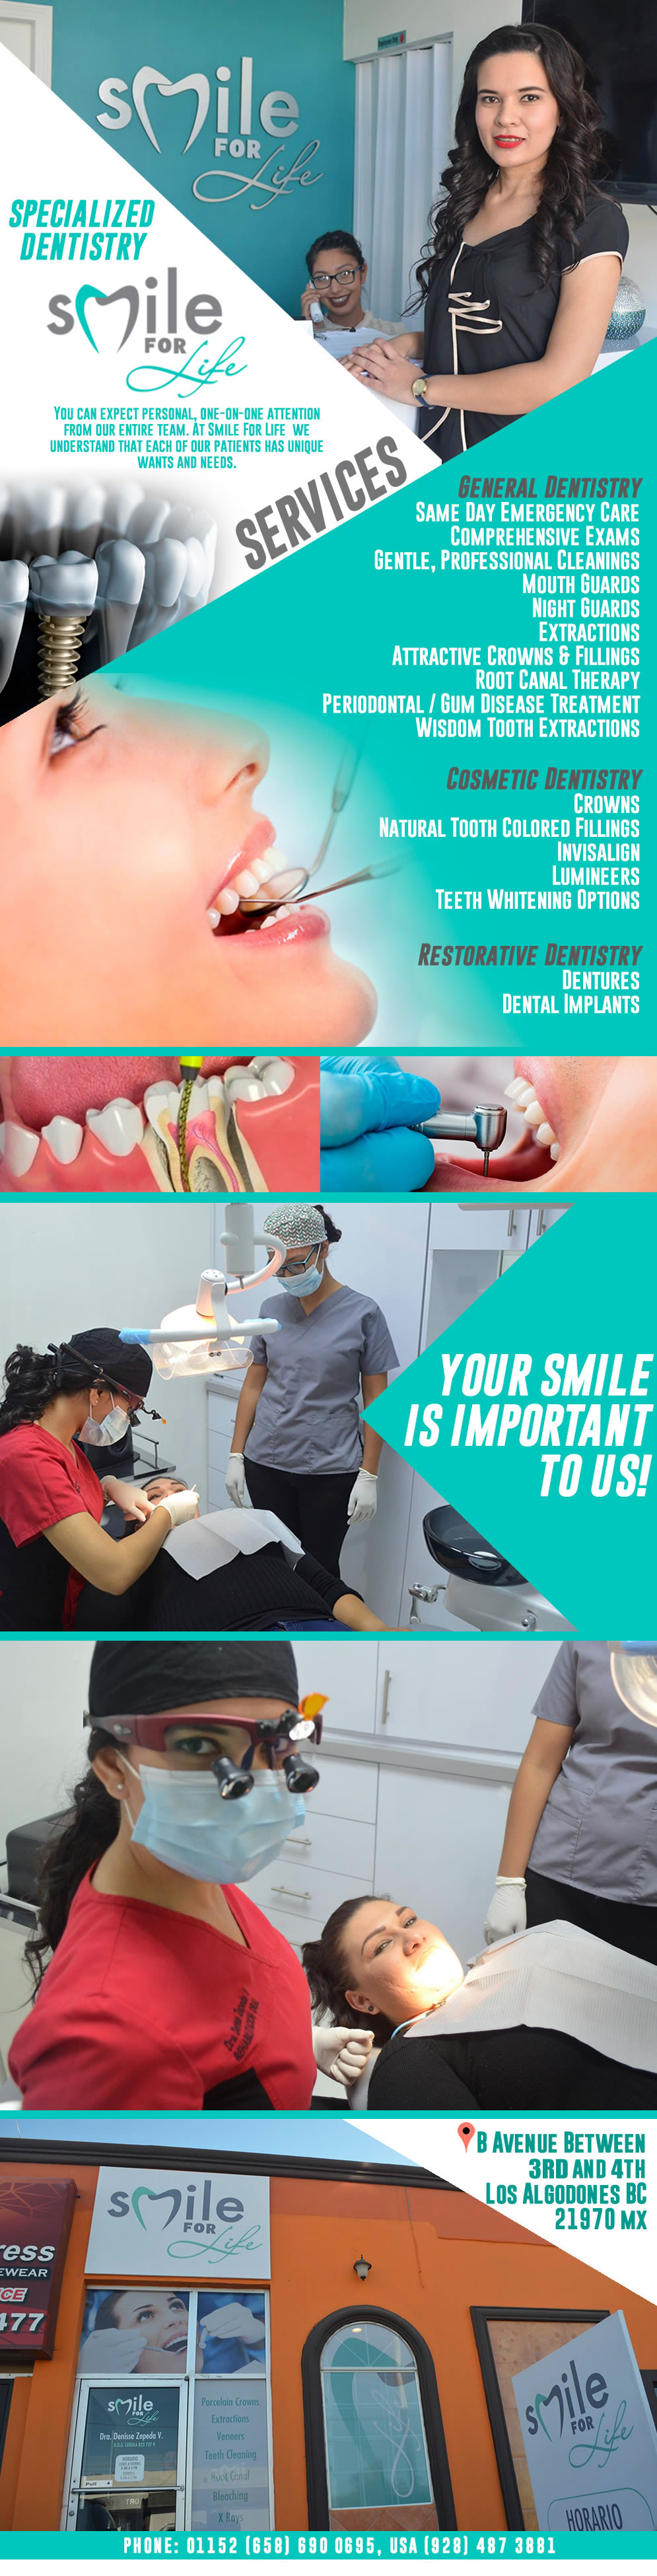 Smile For Life Denisse Zepeda  D.D.S.  in Algodones  in Algodones  Services: Implants, Digital X-Rays, Root Canals, Zirconia Crowns, Porcelain Crowns, White Filings, Partials, Flexible Partial, Dentures, Extractions, Relines (hard & soft), Cleaning, Bleaching, Veeners.             implants  Cosmetic Dentistry General Dentistry Surgery X-Rays  Flexible Valplast Partials  Gold Crowns Porcelain Crowns  Root Canals Fiber Posts  Inlays Porcelain Bridges  Porcelain Bridges with Gold Metal  Traditional Acrylic Dentures  Molloplast (Soft Material) Dentures General Oral Surgery  Onlays  Jackets  Traditional Partials Sedation Proflex (Flexible) Dentures Prescriptions  Relines (Hard  Soft) Fluoride Treatments Deep Cleaning  Repair to Dentures Traditional Cleaning  Wisdom Teeth Extraction  Porcelain Fillings Immediate Upper and Lower Dentures (Alveoplasty)  Laser Teeth Whitening On Site Dental  Autoclave Sterilization   zirconia crowns Porcelain Crowns  Root Canals Fiber Posts  Inlays Porcelain Bridges  Porcelain Bridges with Gold  Metal Bridges Traditional Acrylic Dentures  Molloplast (Soft Material) Dentures General Oral Surgery  Onlays  Jackets  Traditional Partials Sedation Proflex (Flexible) Dentures Prescriptions  Relines (Hard  Soft) Fluoride Treatments  Deep Cleaning  Repair to Dentures Traditional Cleaning  Wisdom Teeth Extraction  Porcelain Fillings Immediate Upper and Lower Dentures (Alveoplasty)  Laser Teeth Whitening On Site Dental Lab  Autoclave Sterilization Digital X-Rays dds d.d.s. dds. denisse zepeda denise